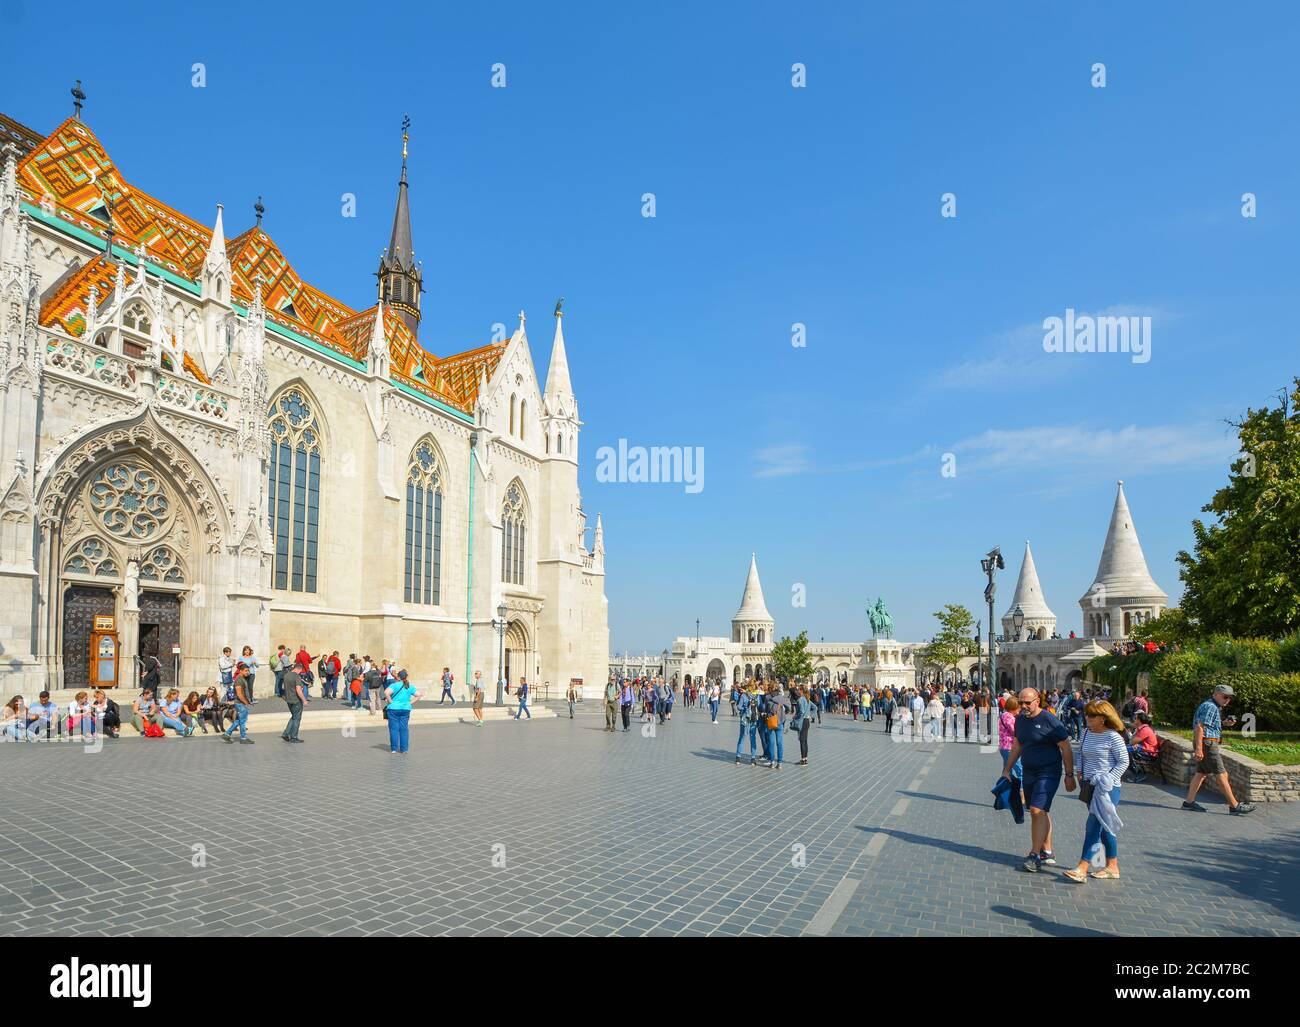 Tourists visit the Matthias Church square with the Fisherman's Bastion behind at the Buda Castle Complex in Budapest, Hungary Stock Photo